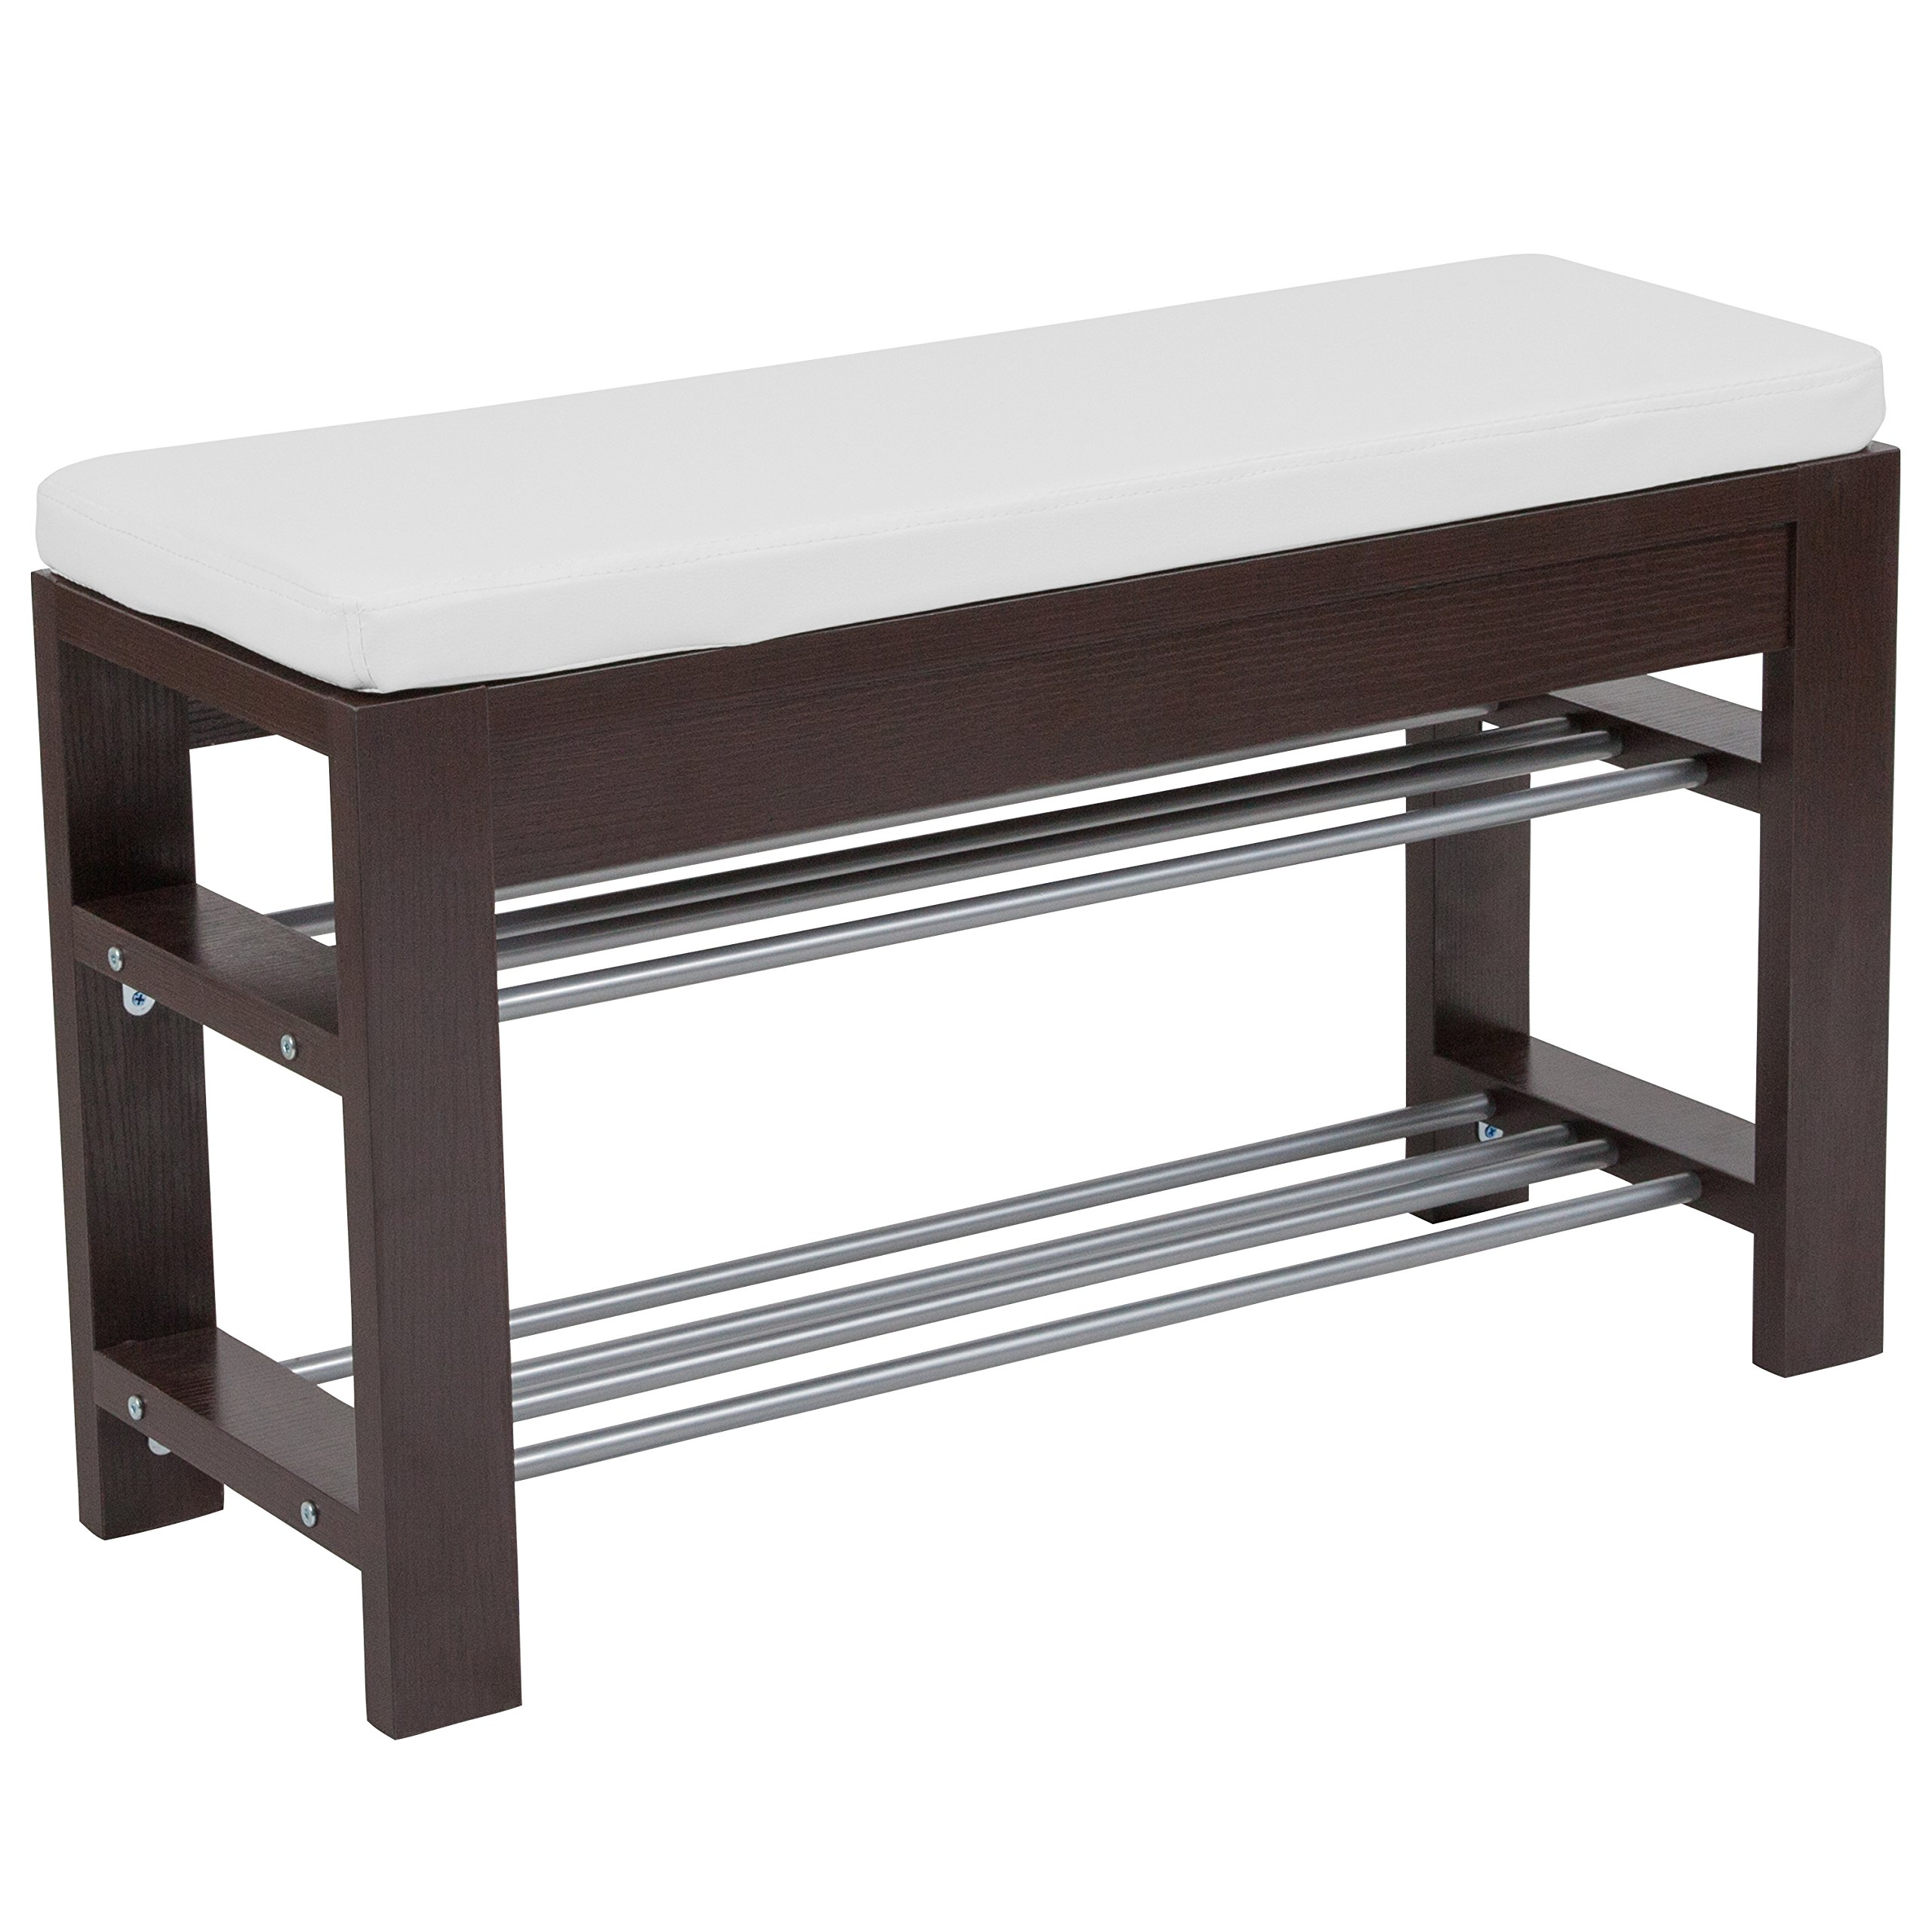 Flash Furniture Bay Ridge Espresso Wood Finish Storage Bench with Cushion